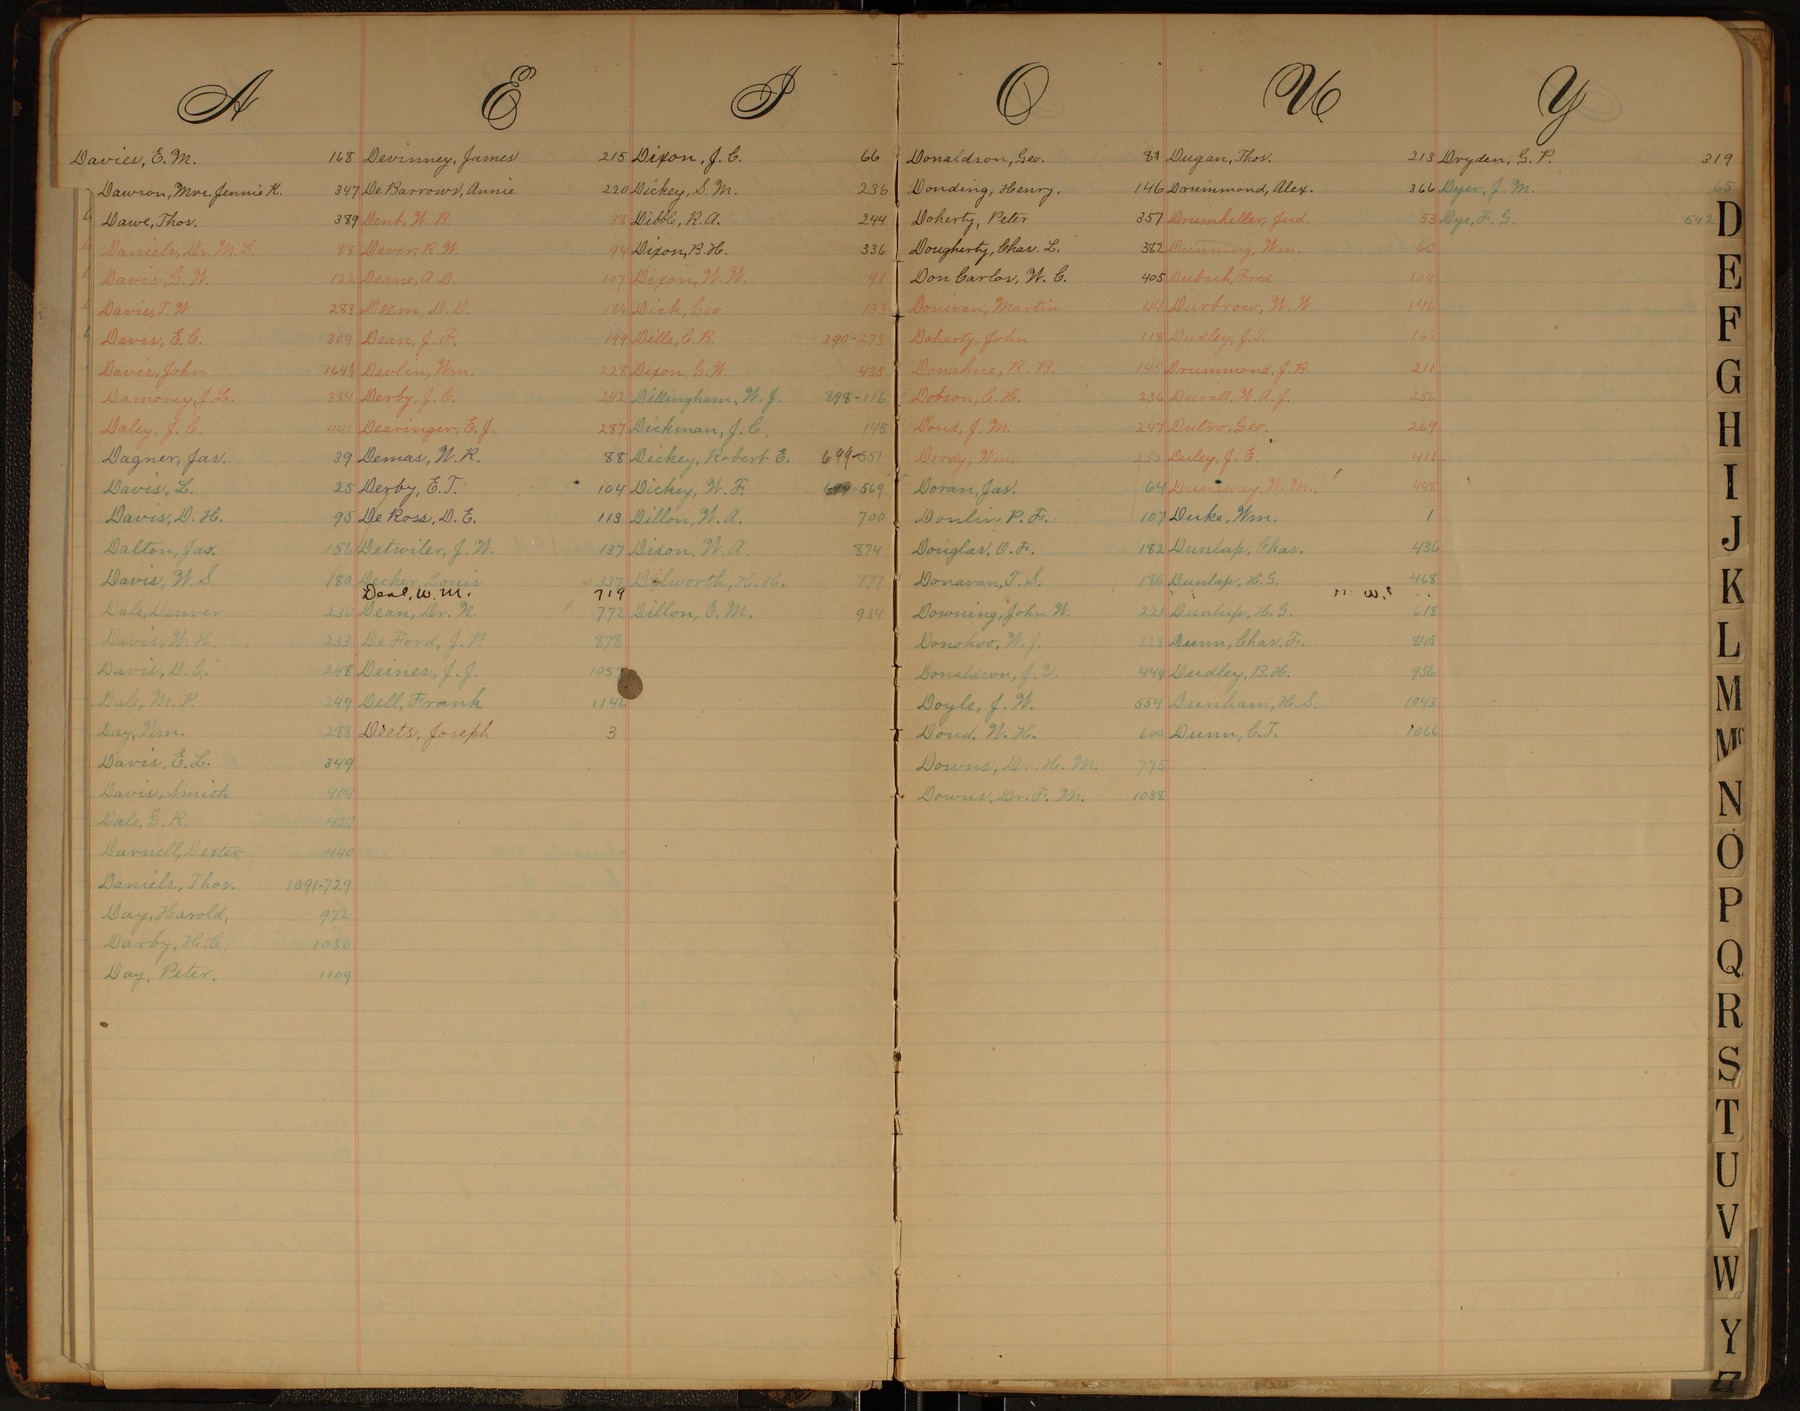 Hermon S. Major papers - Index D